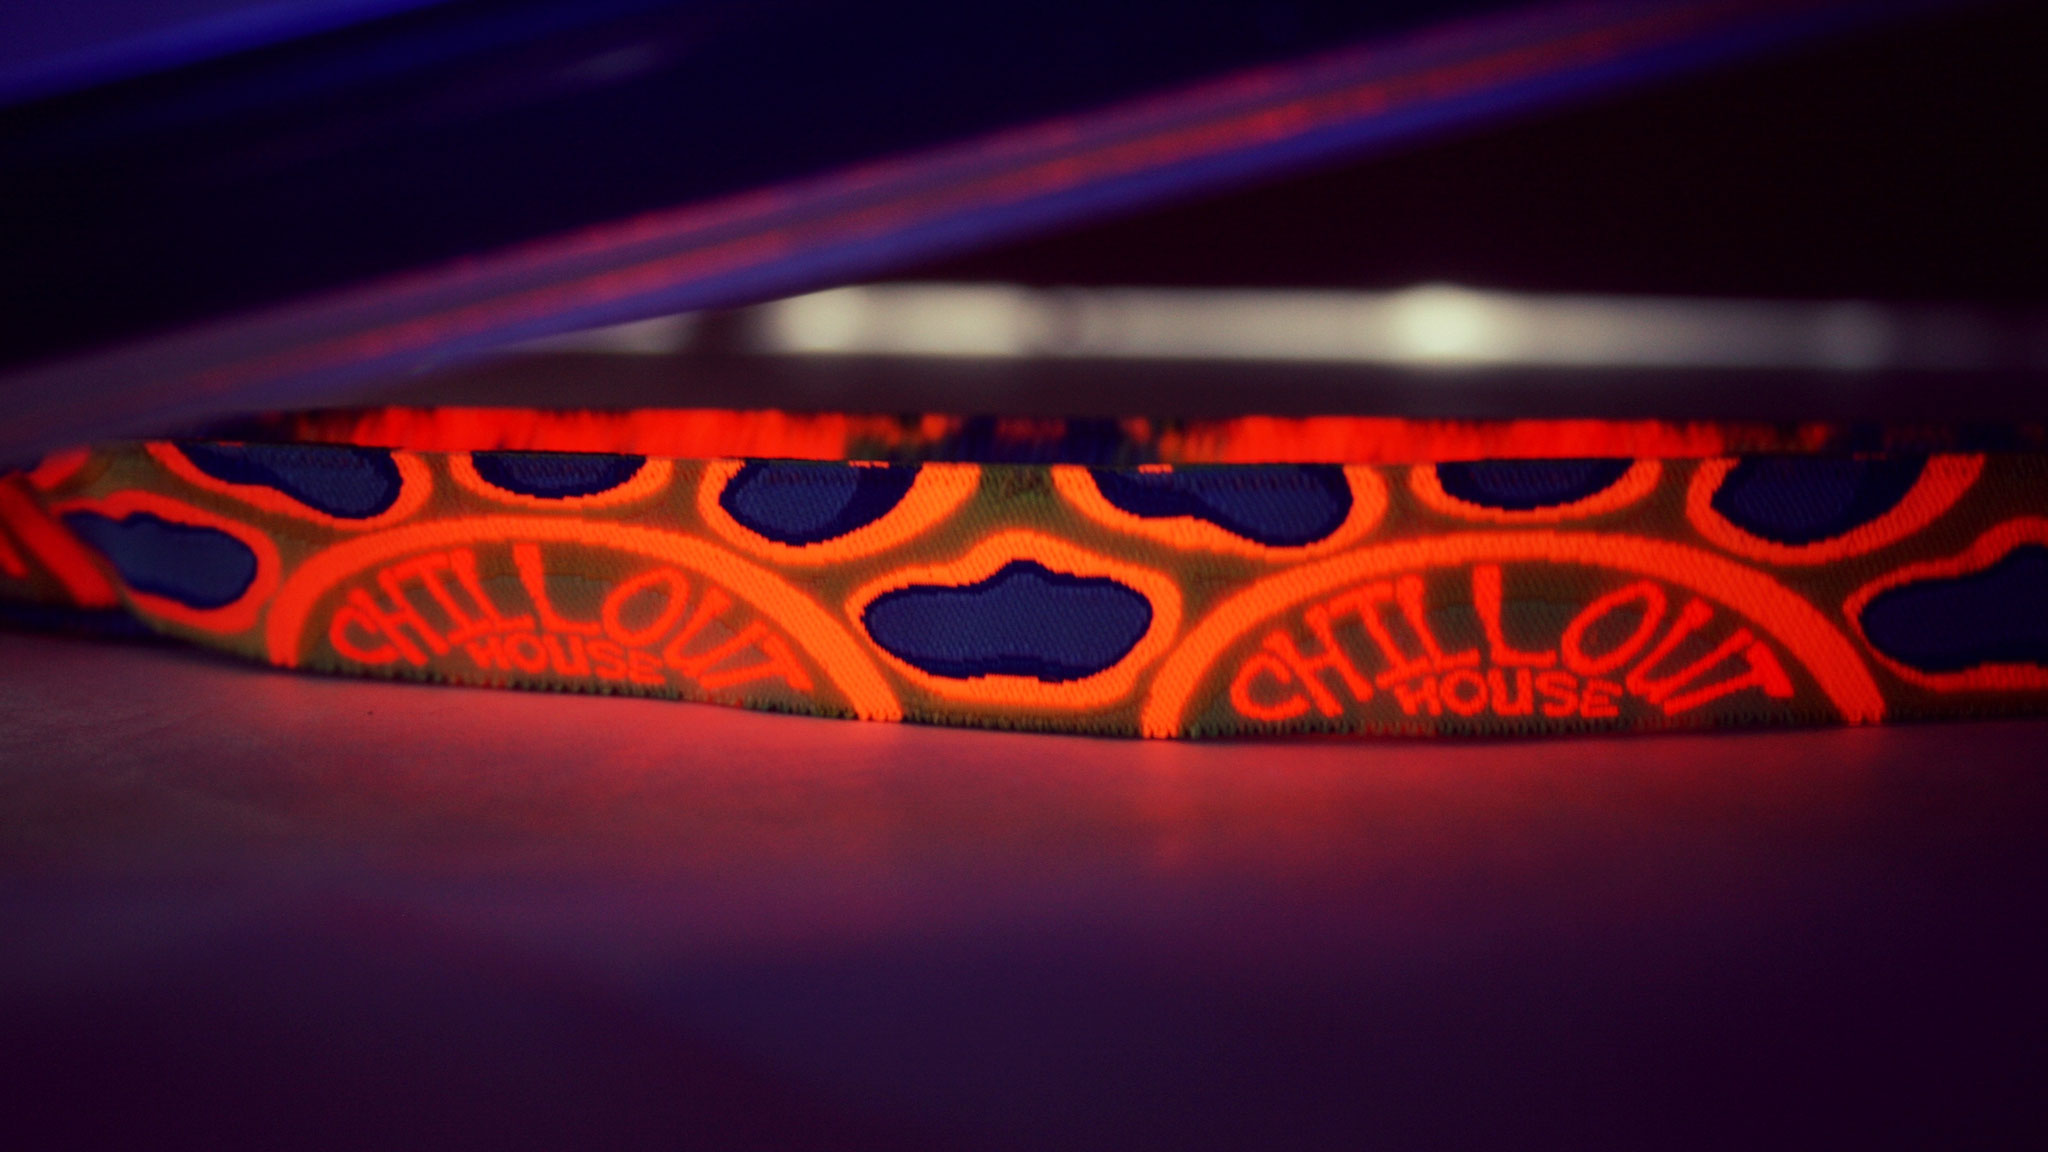 Customise your bands with UV, Metallic thread and variable data